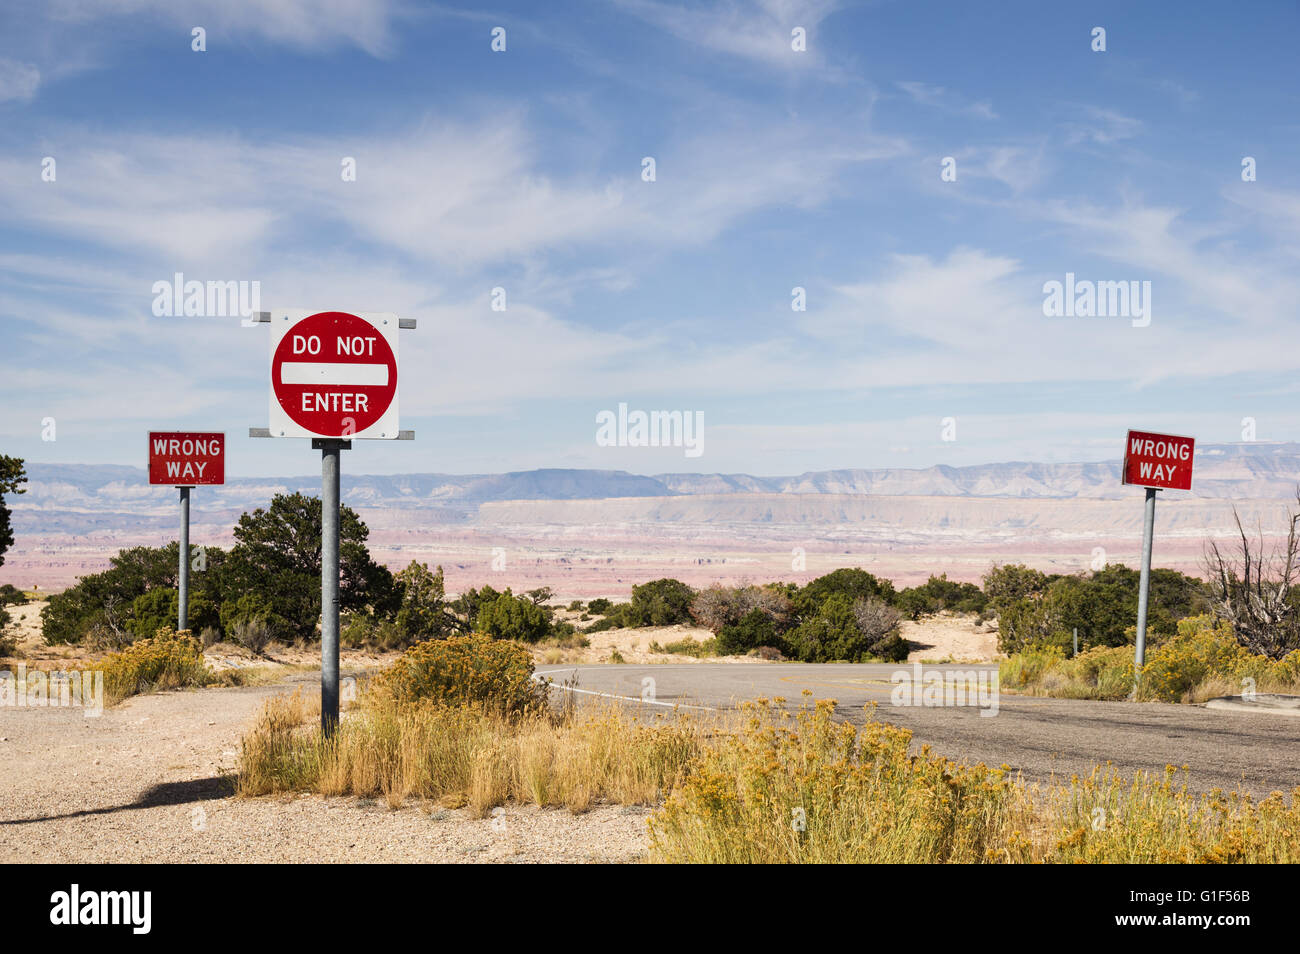 wrong way and do not enter signs along a road in the desert southwest - Stock Image